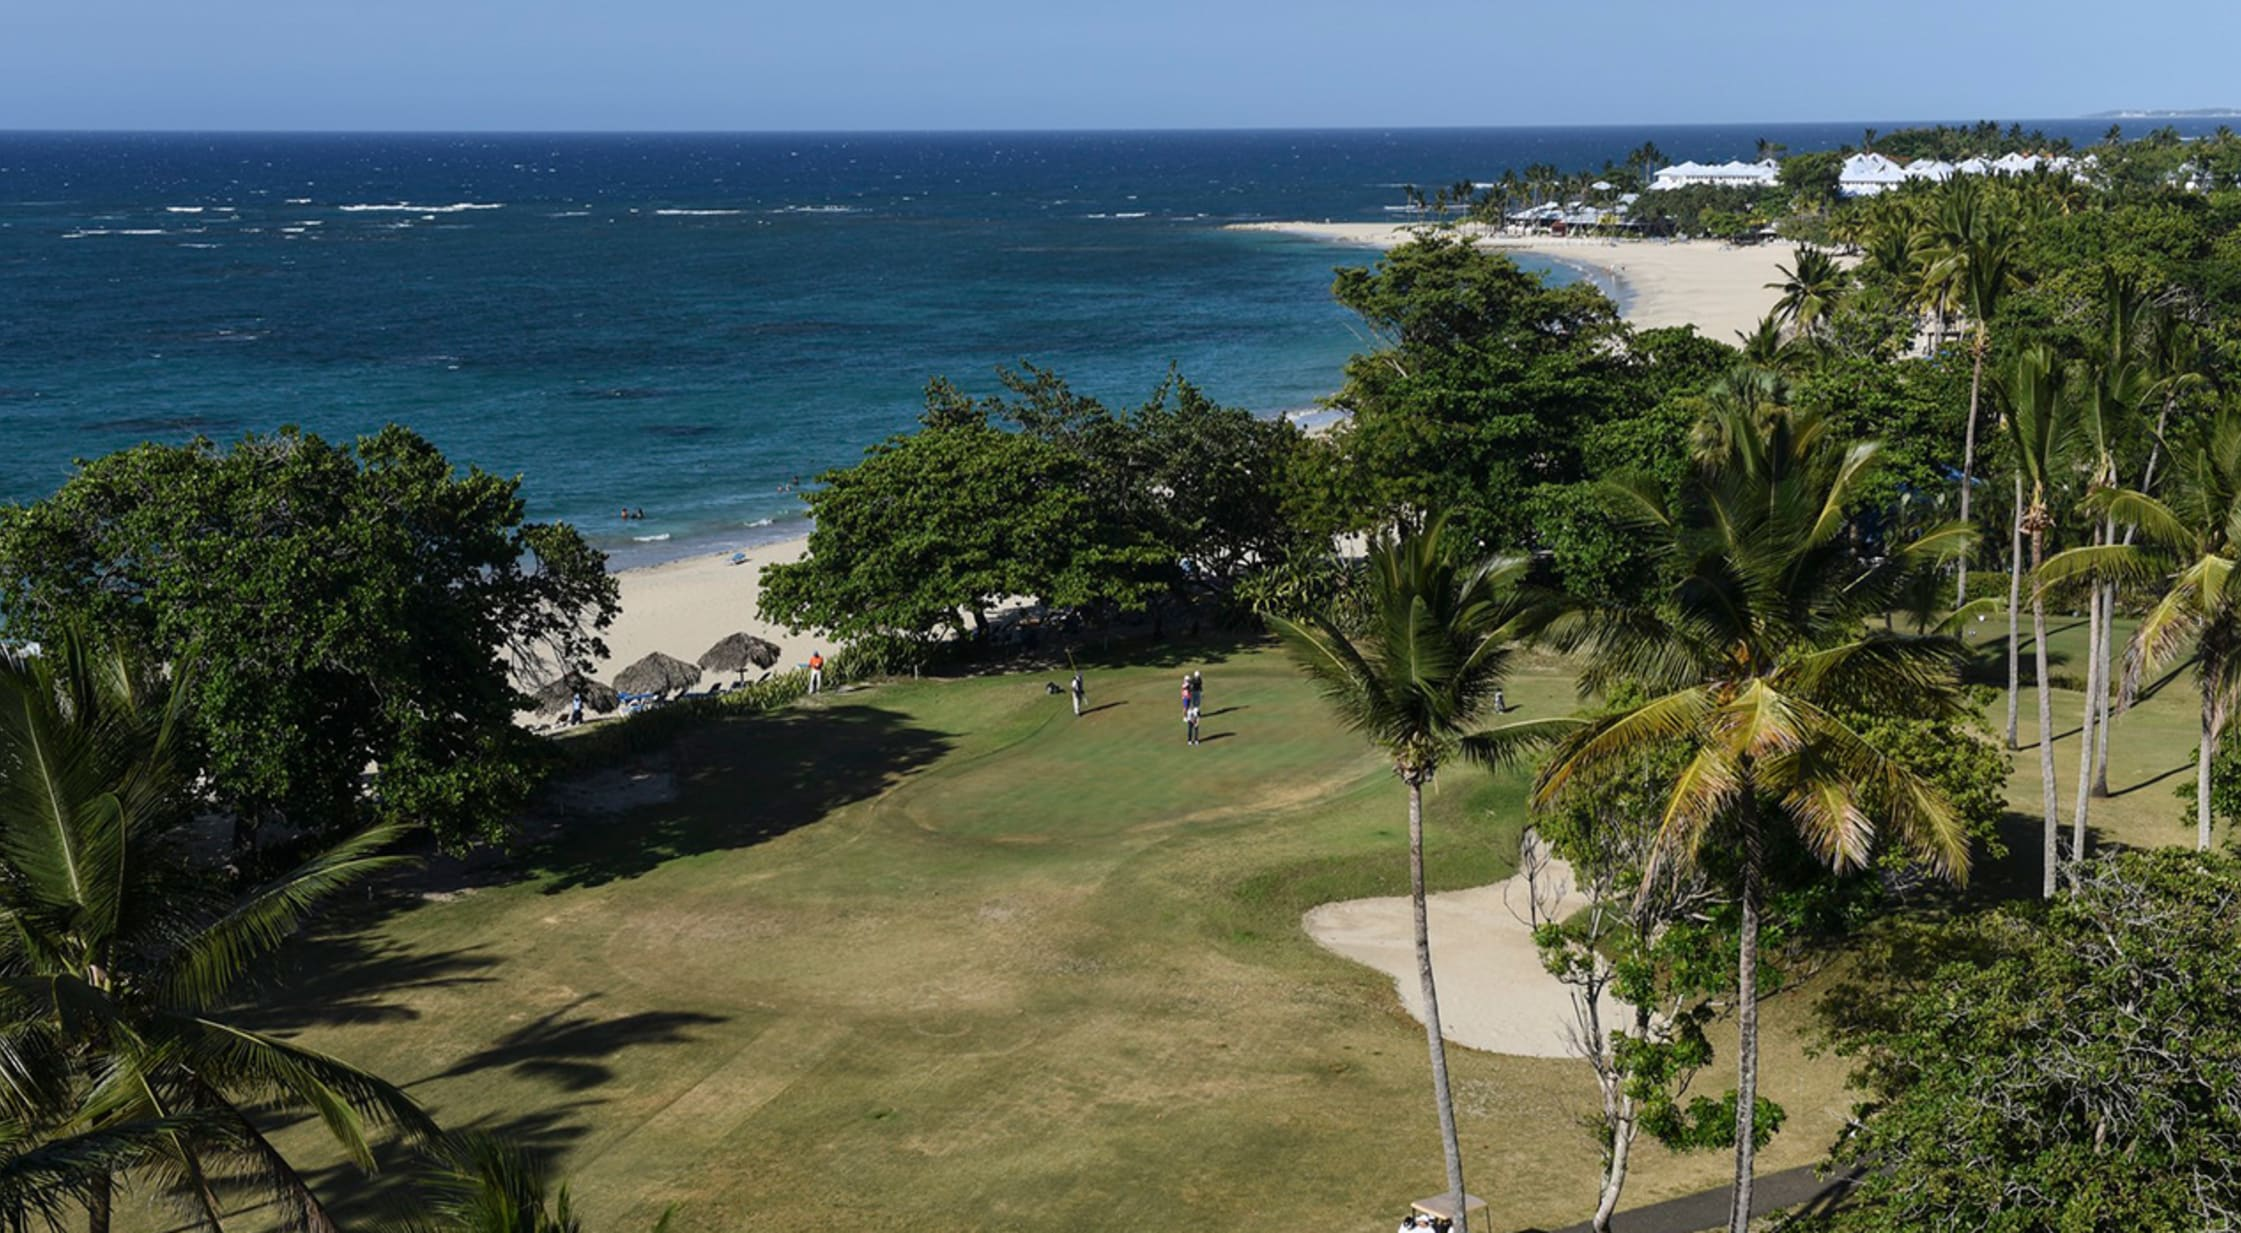 The First Look: 2018 Puerto Plata DR Open